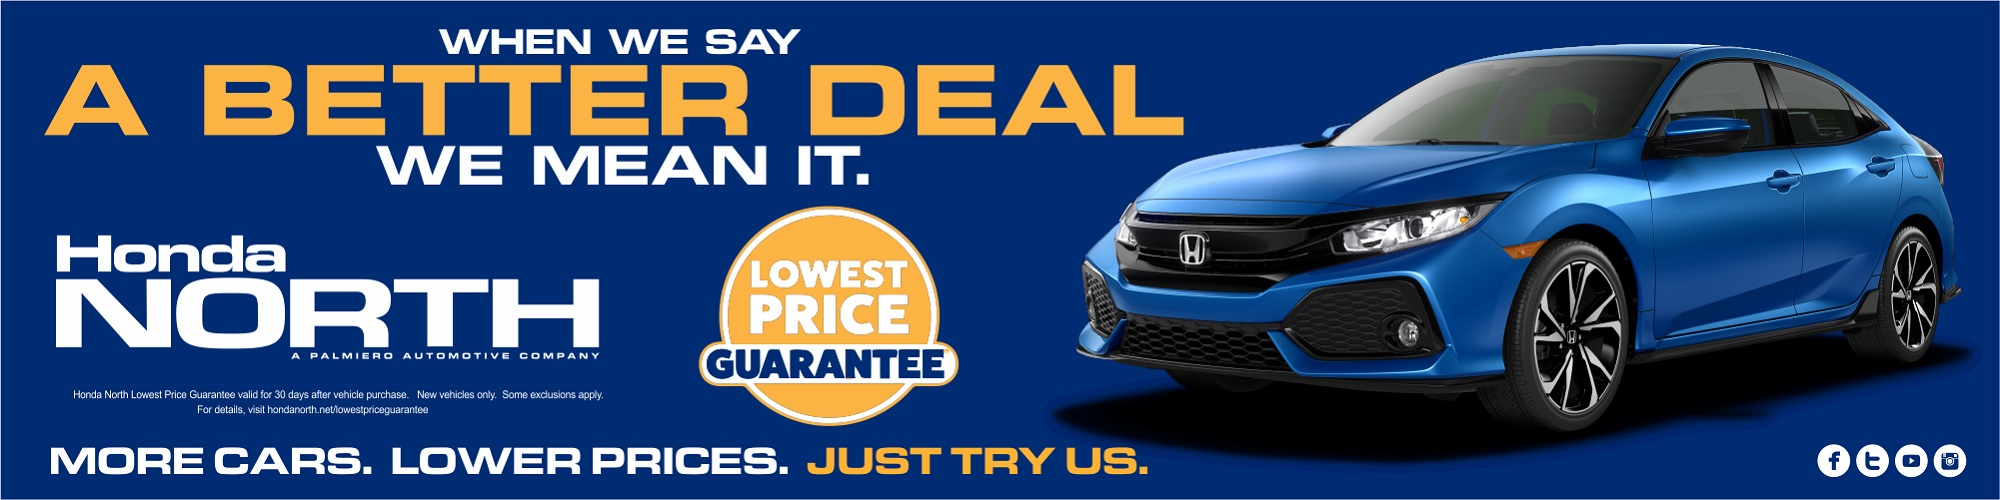 Lowest Price Guarantee Banner at Honda North in Butler, PA